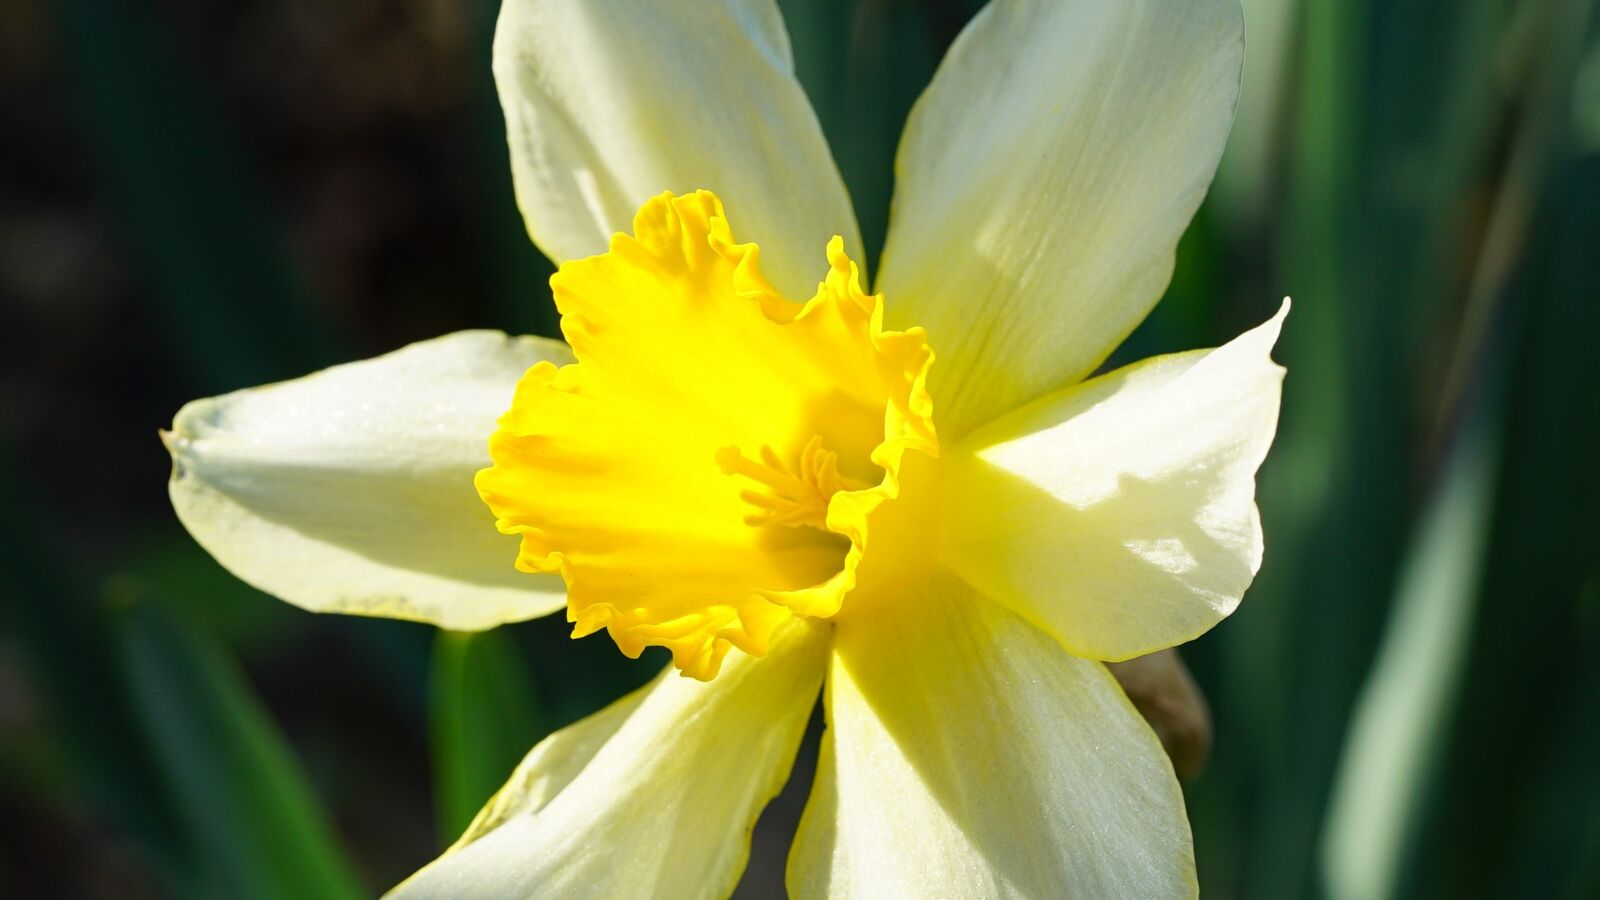 """Sony a7S sample photo. """"Daffodil, flower, nature"""" photography"""